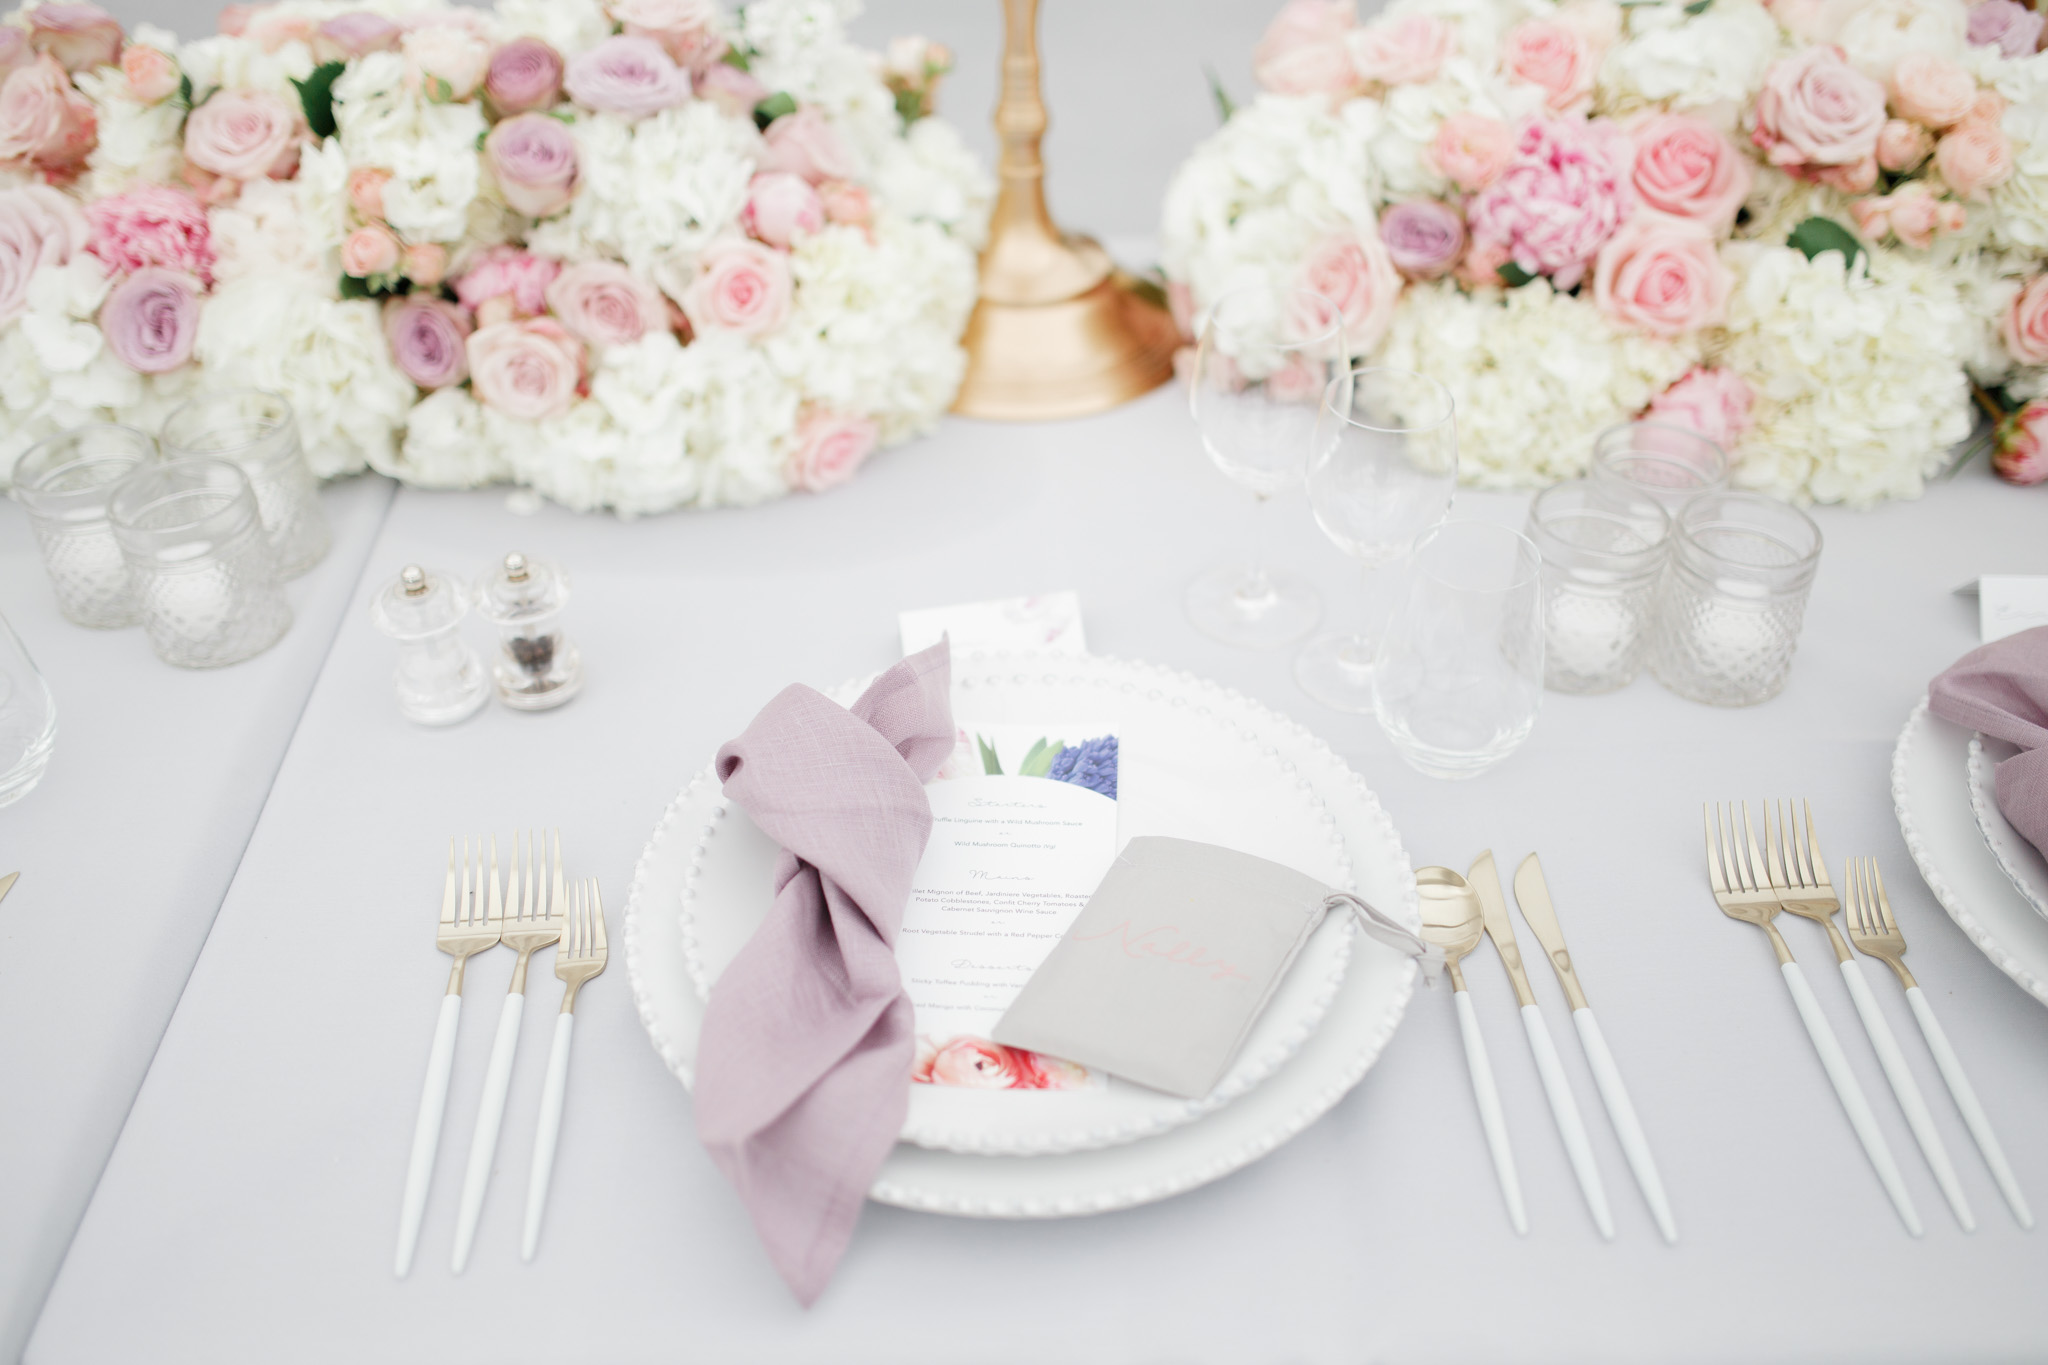 Luxury Place Setting | Oxford Wedding Planner Vanilla Rose Weddings